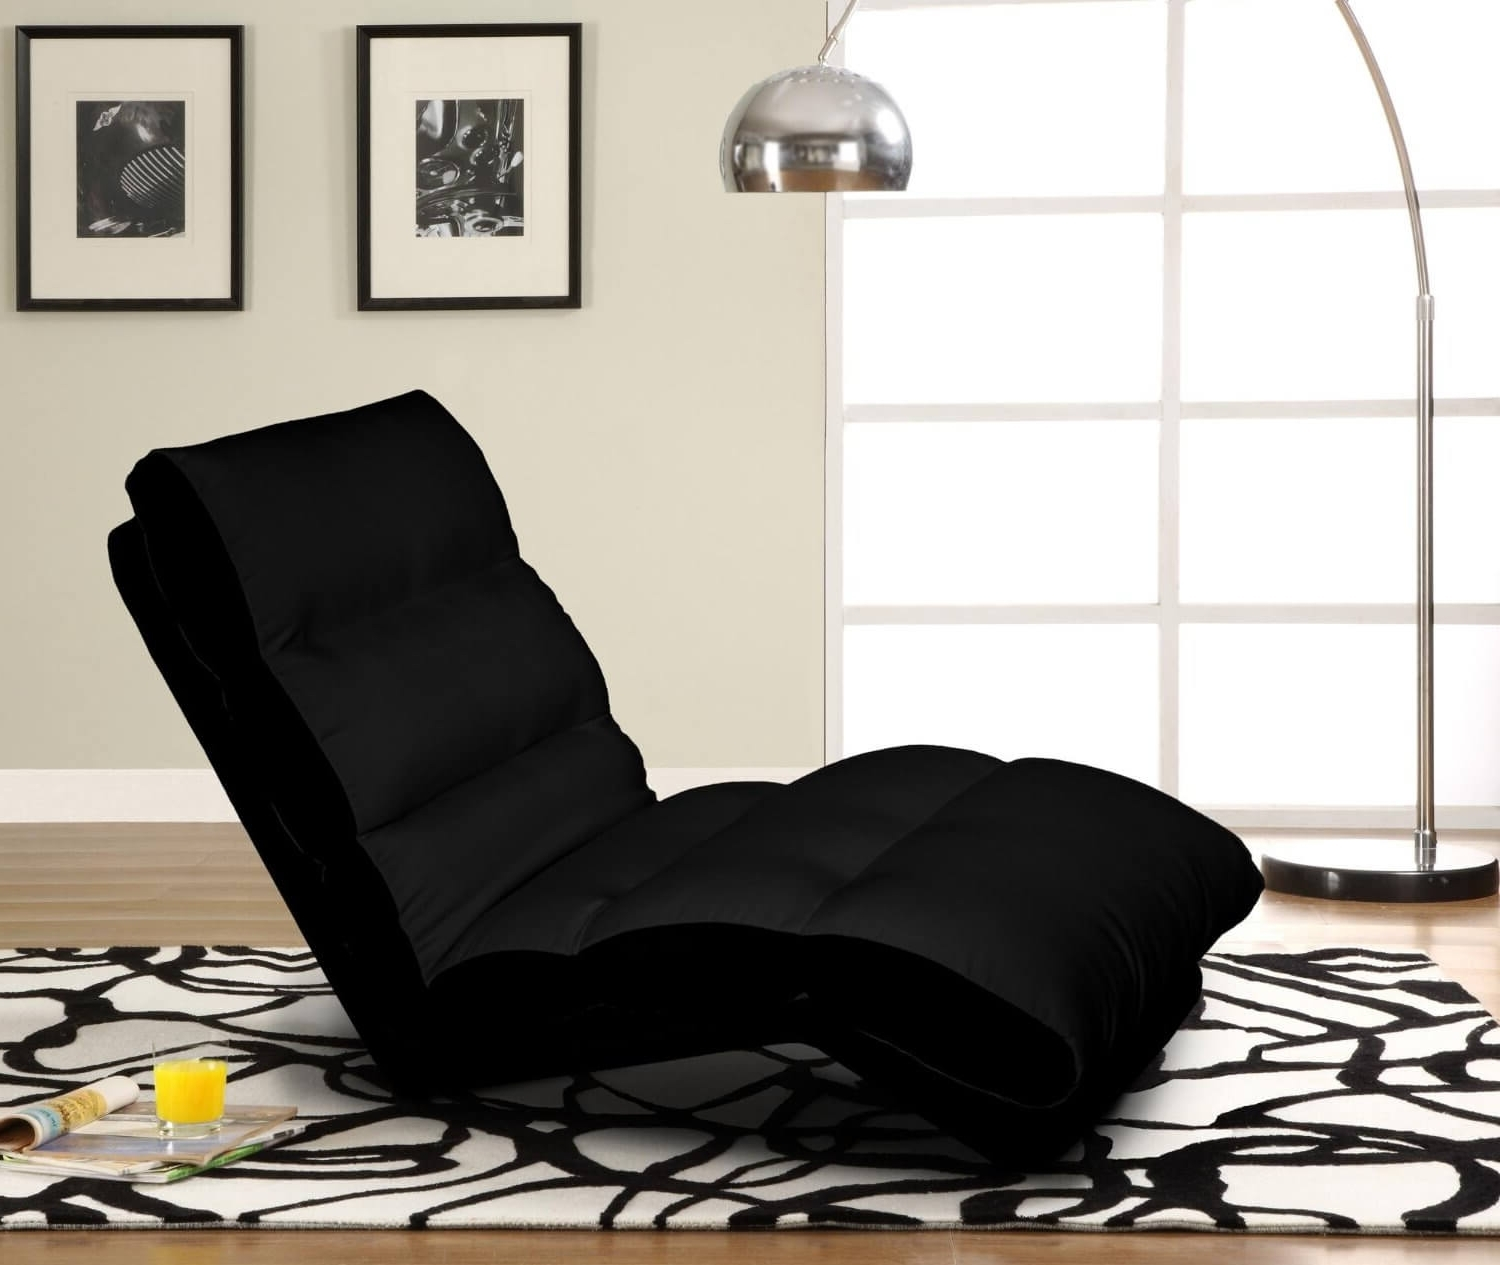 Convertible Chaises With Regard To Current Top 20 Types Of Black Chaise Lounges (Buying Guide) – (View 4 of 15)